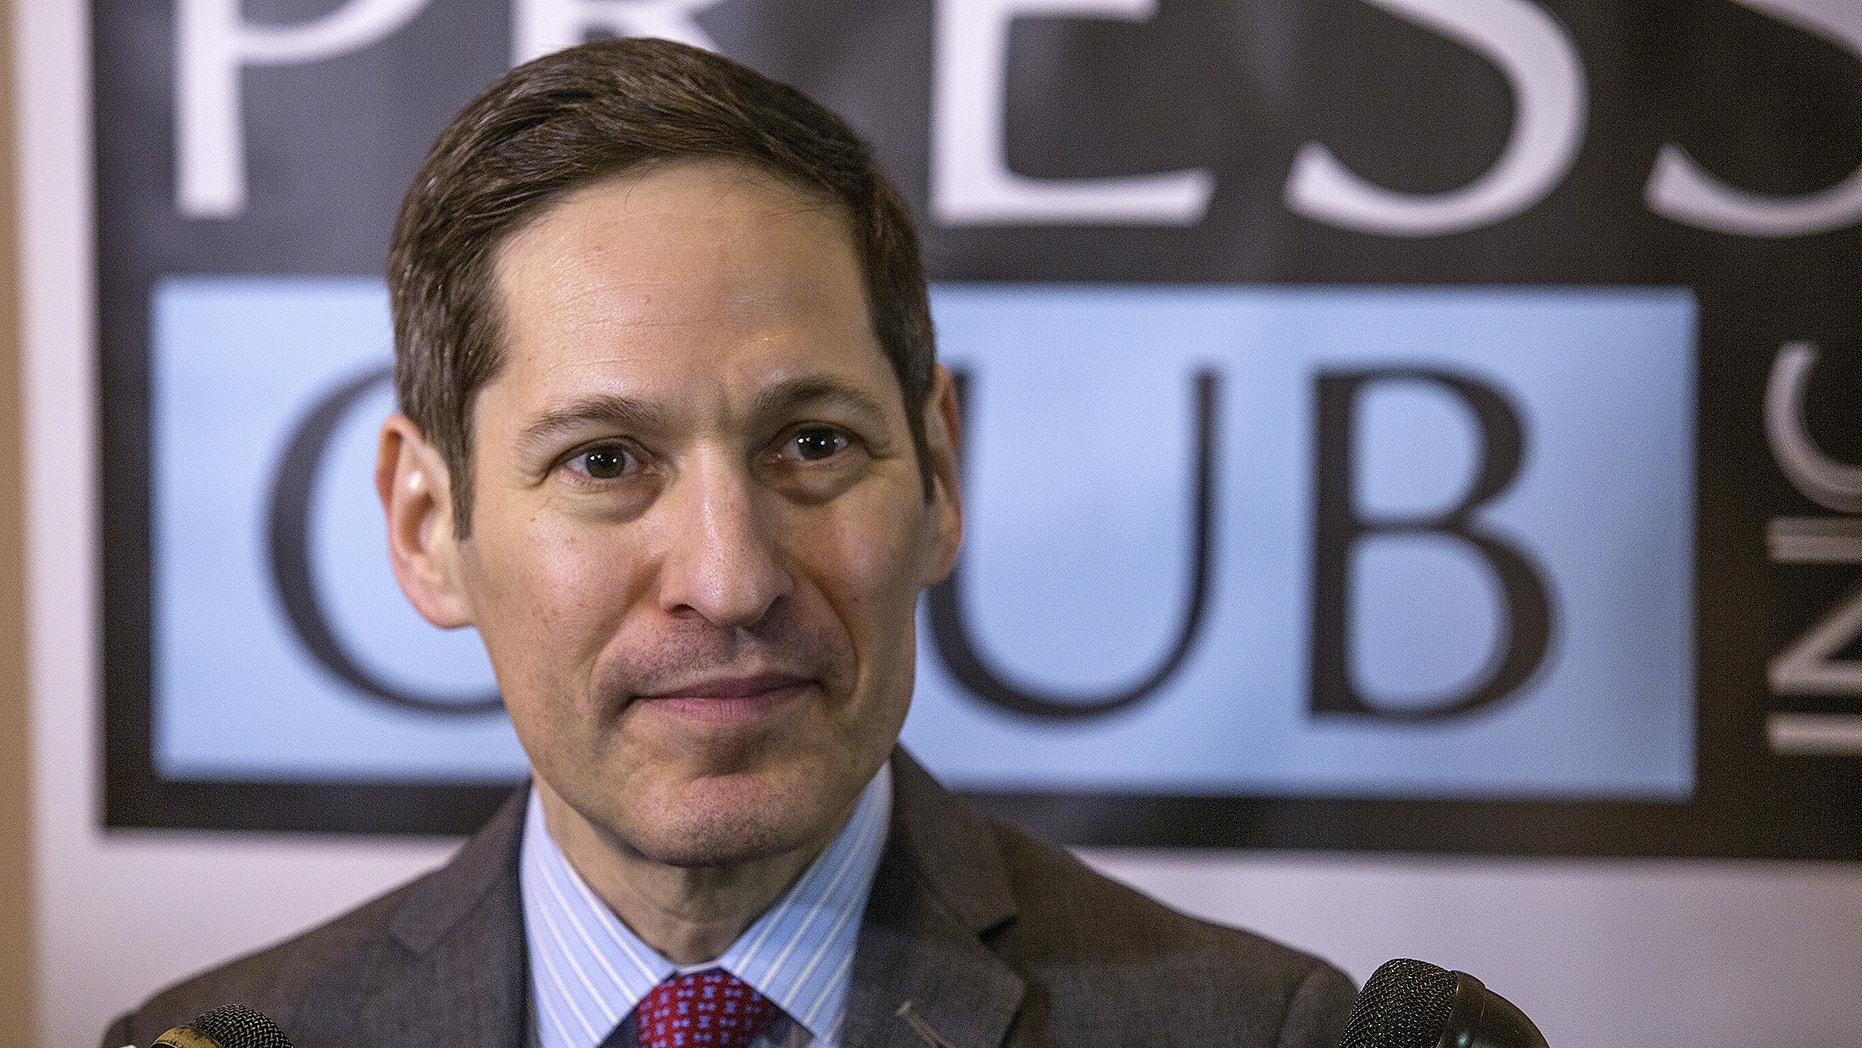 Tom Frieden, the director for Centers for Disease Control and Prevention speaks about the Zika virus at a luncheon in Atlanta hosted by the Atlanta Press Club, on Thursday, June 9, 2016.  (AP Photo/Ron Harris)